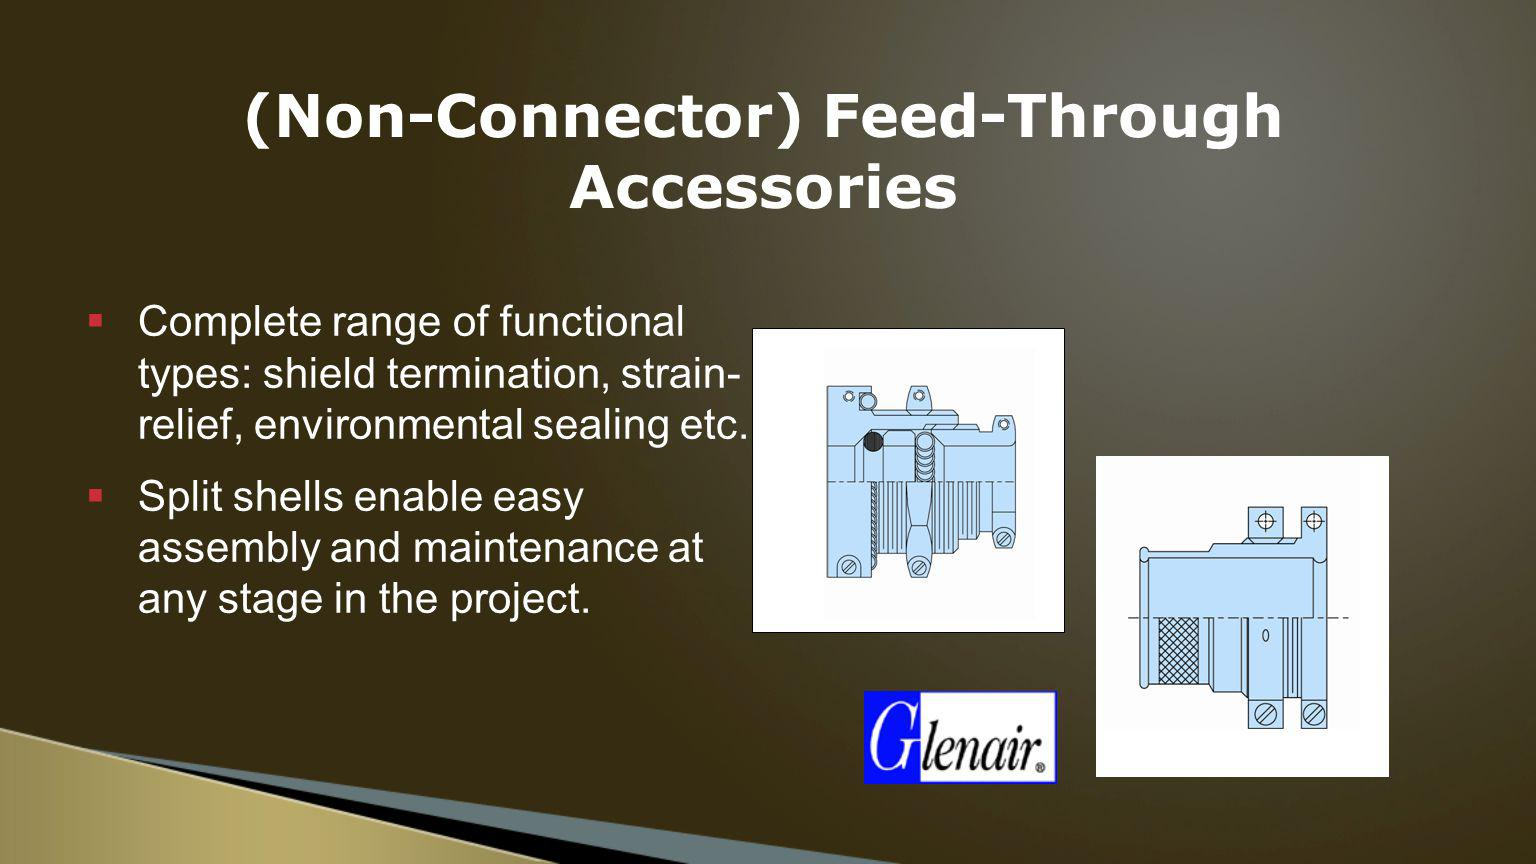 (Non-Connector) Feed-Through Accessories